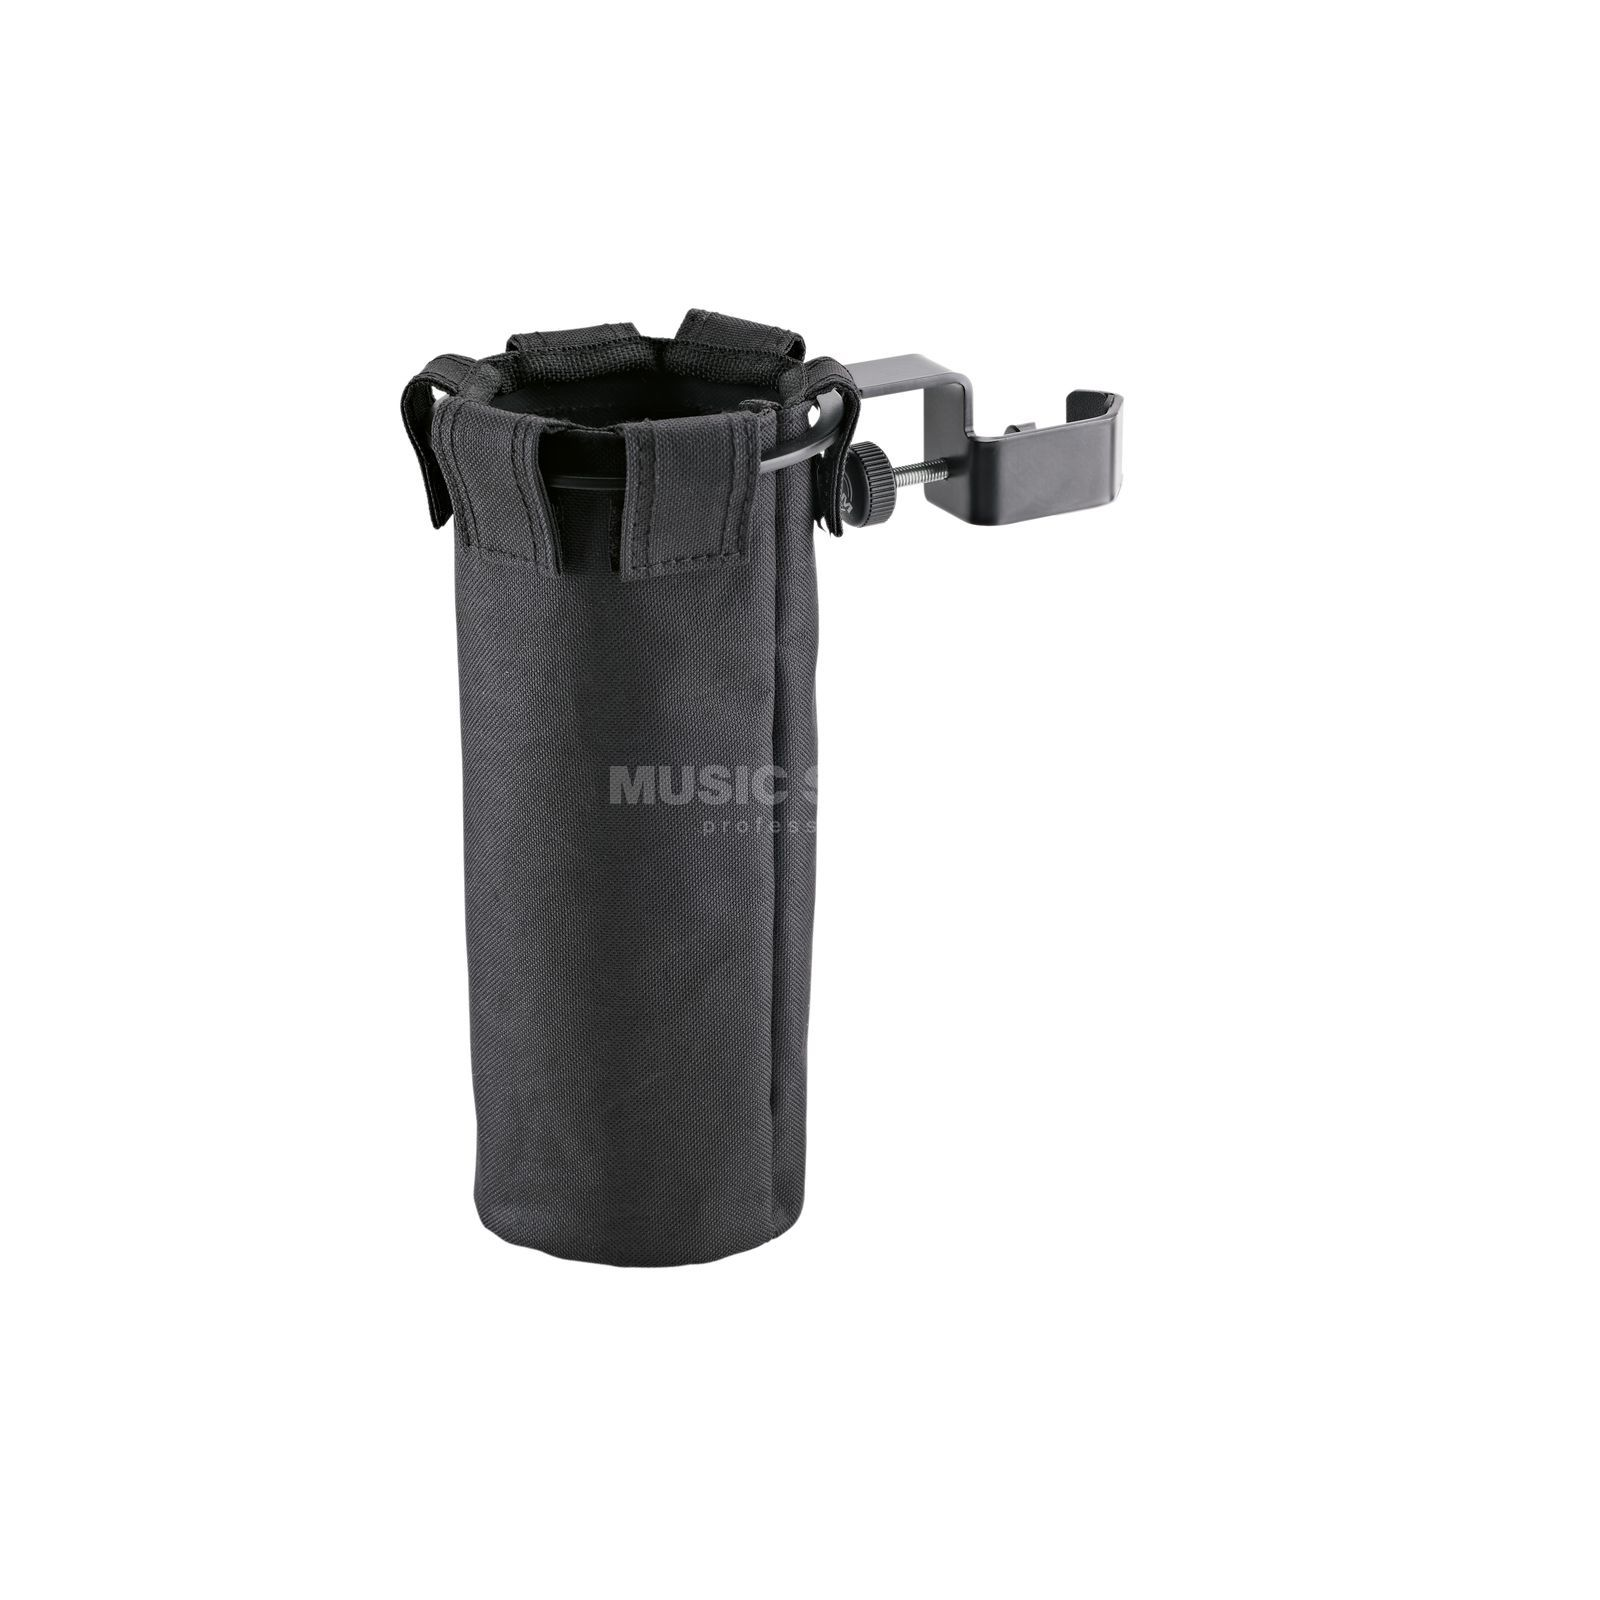 König & Meyer 16450 Drum Stick Holder black Product Image